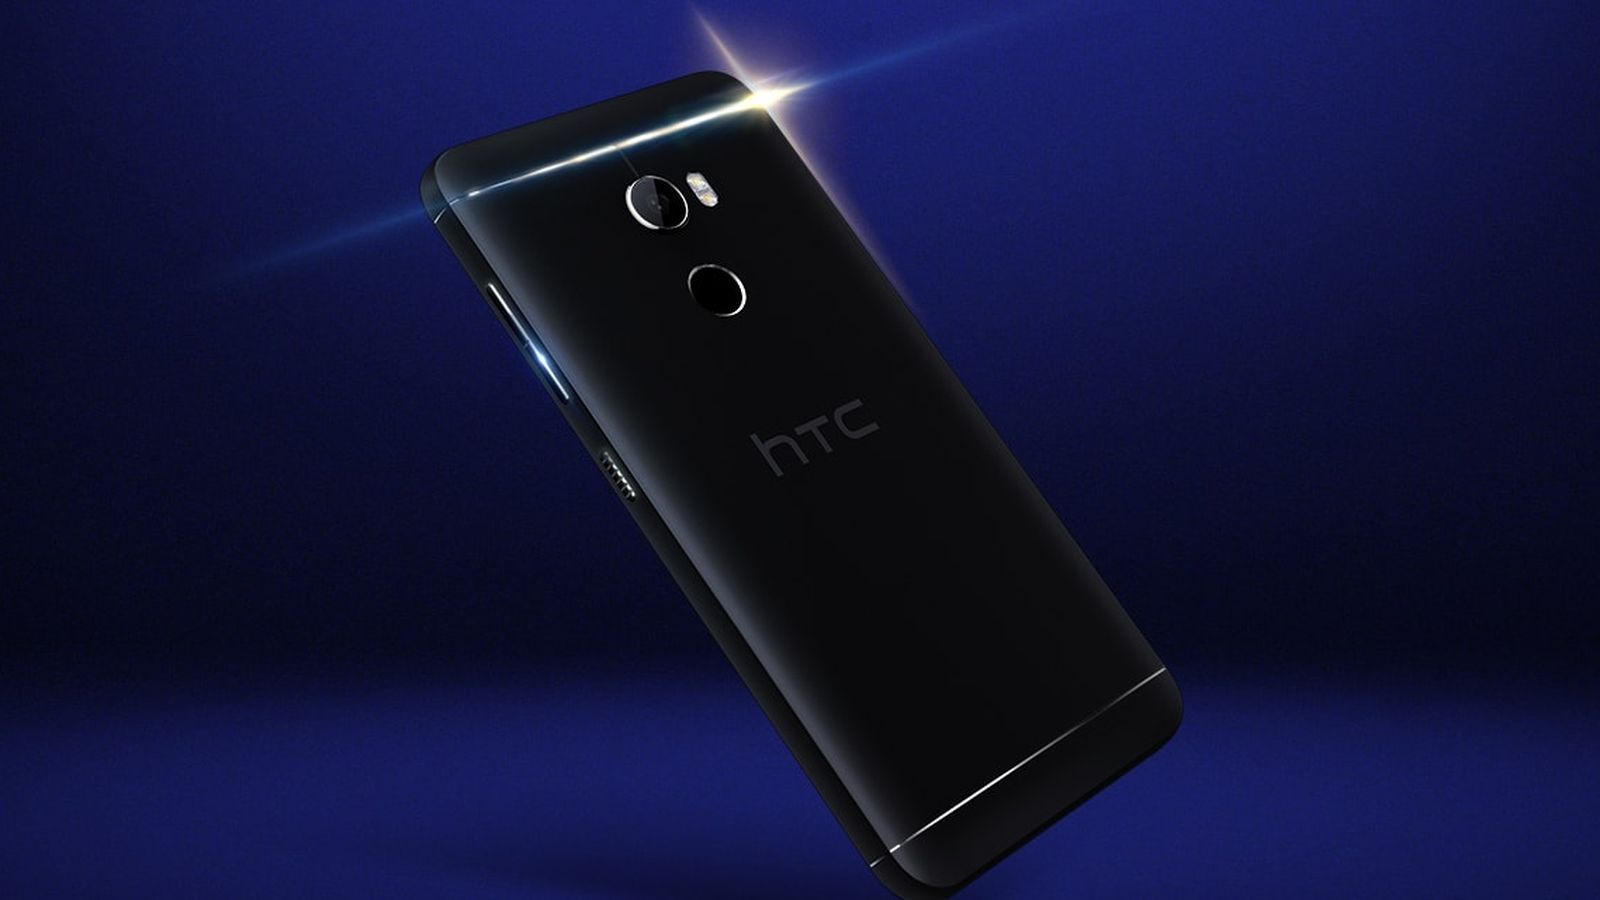 HTC's One X10 is official, but only in Russia